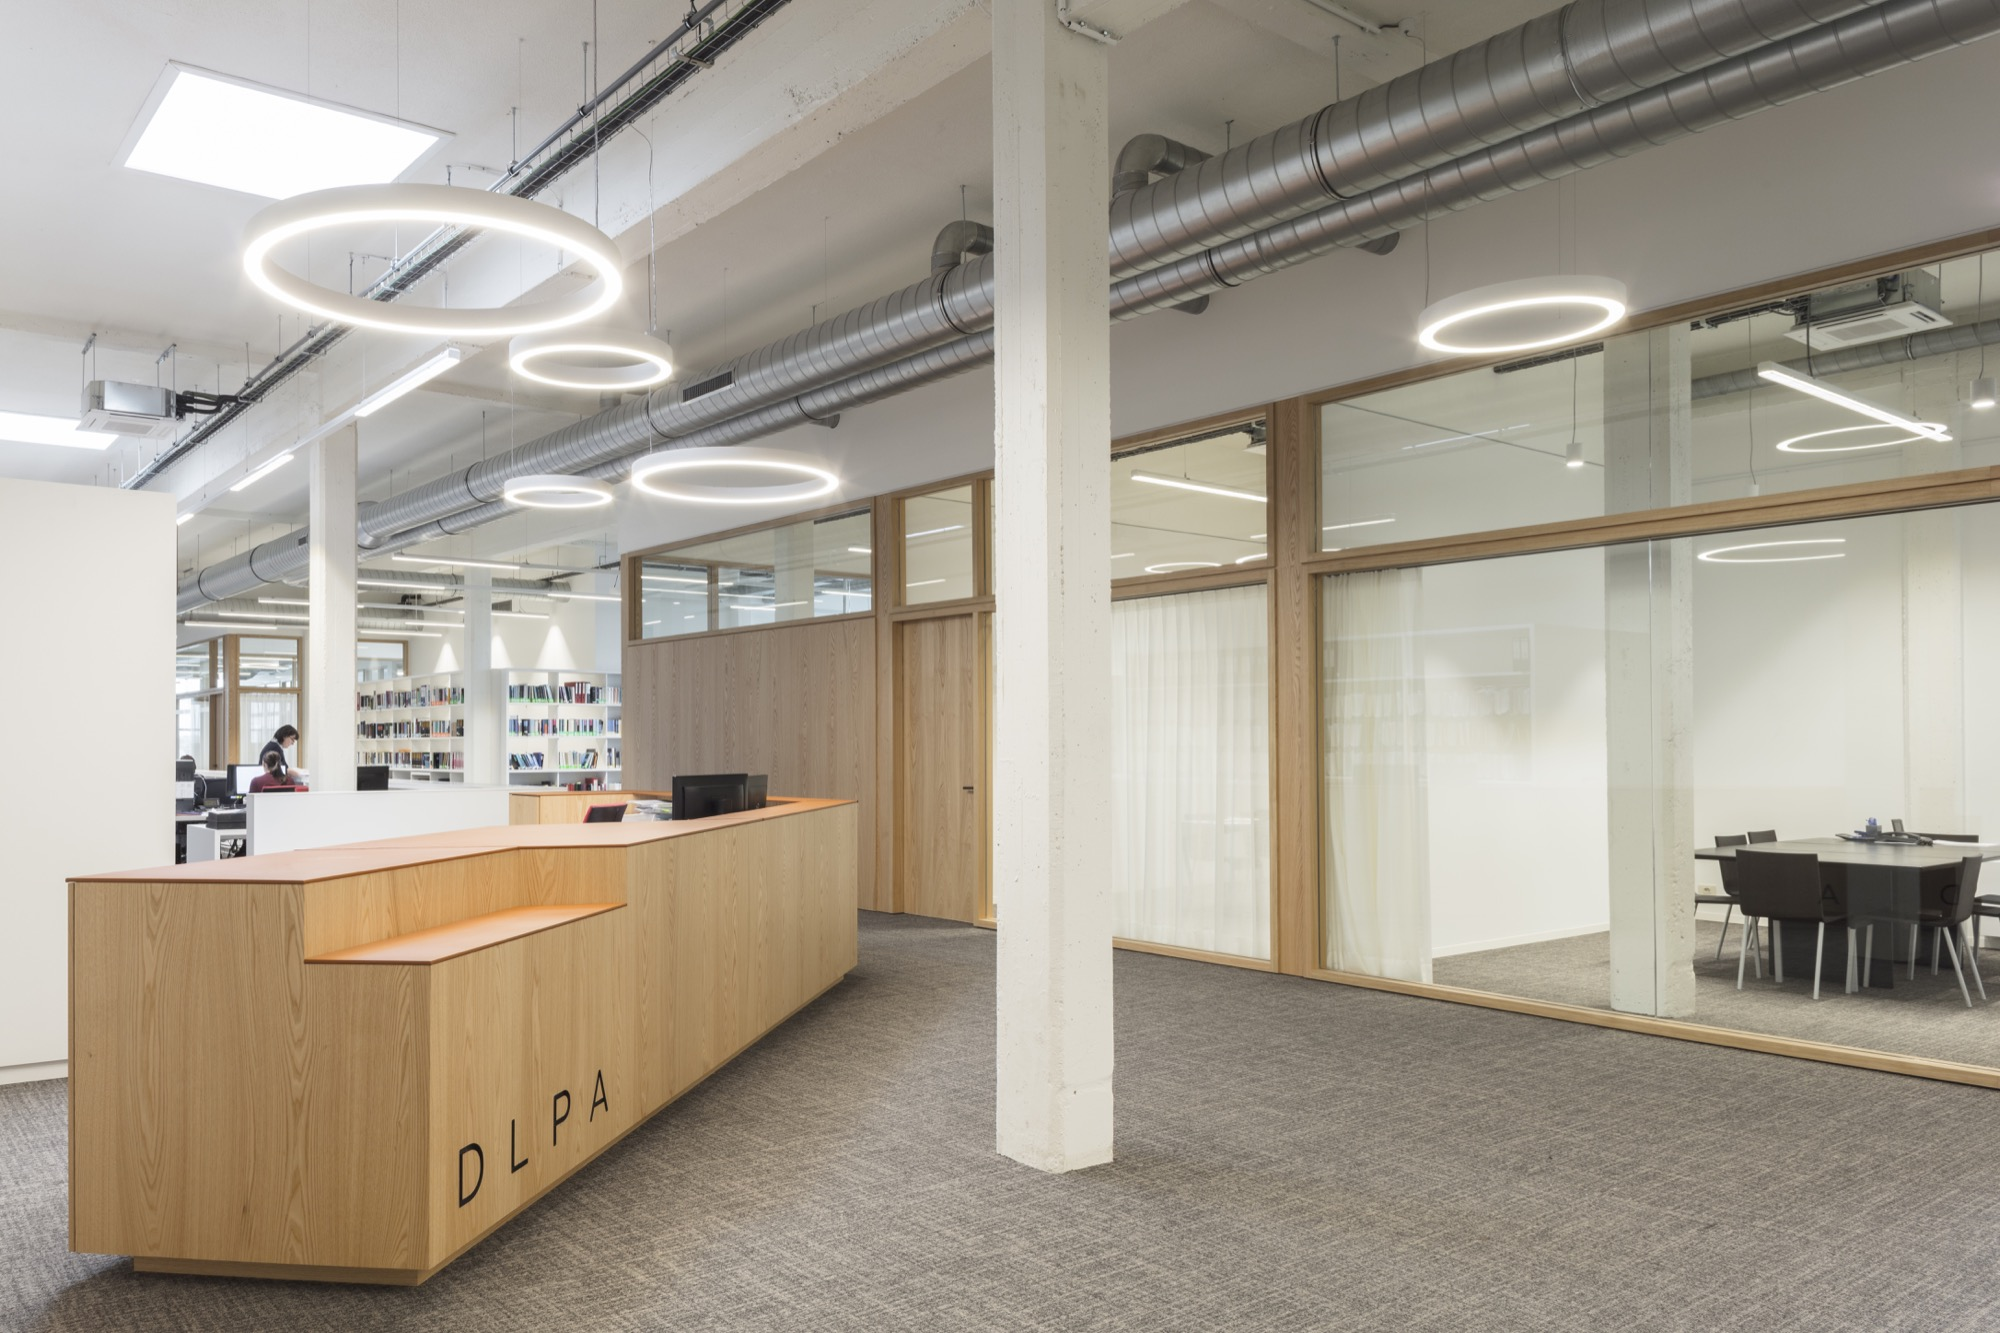 Acoustic frost walls in combination with wooden elements for DLPA Kortrijk